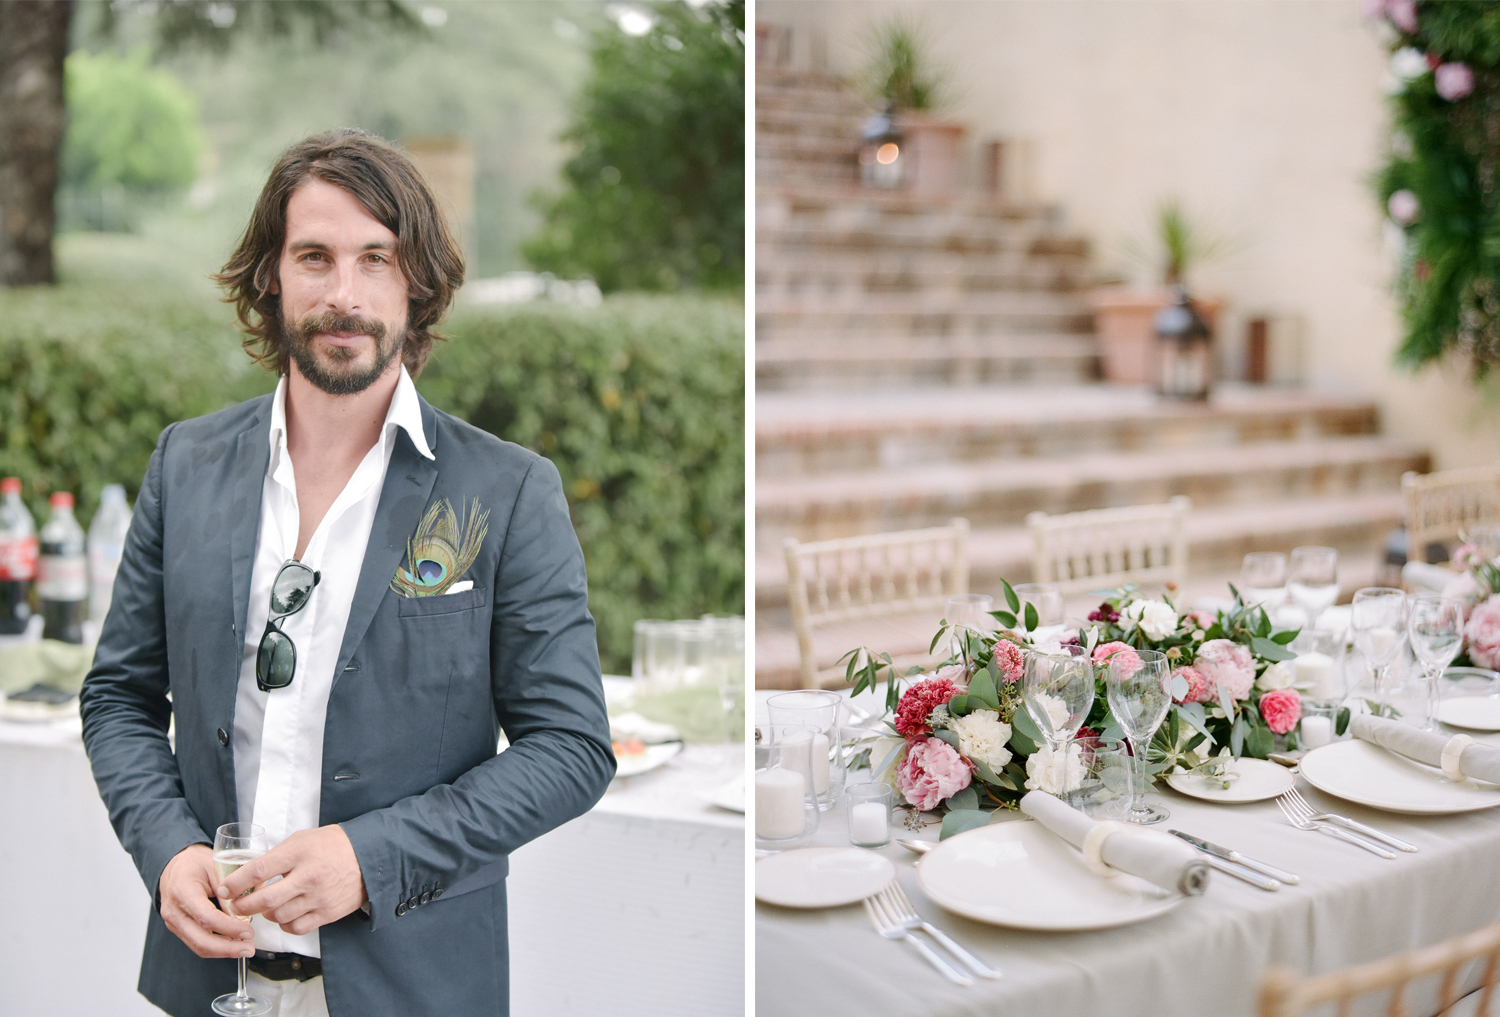 Groomsman with a peacock boutonniere at the wedding reception in Provence, France; Sylvie Gil Photography